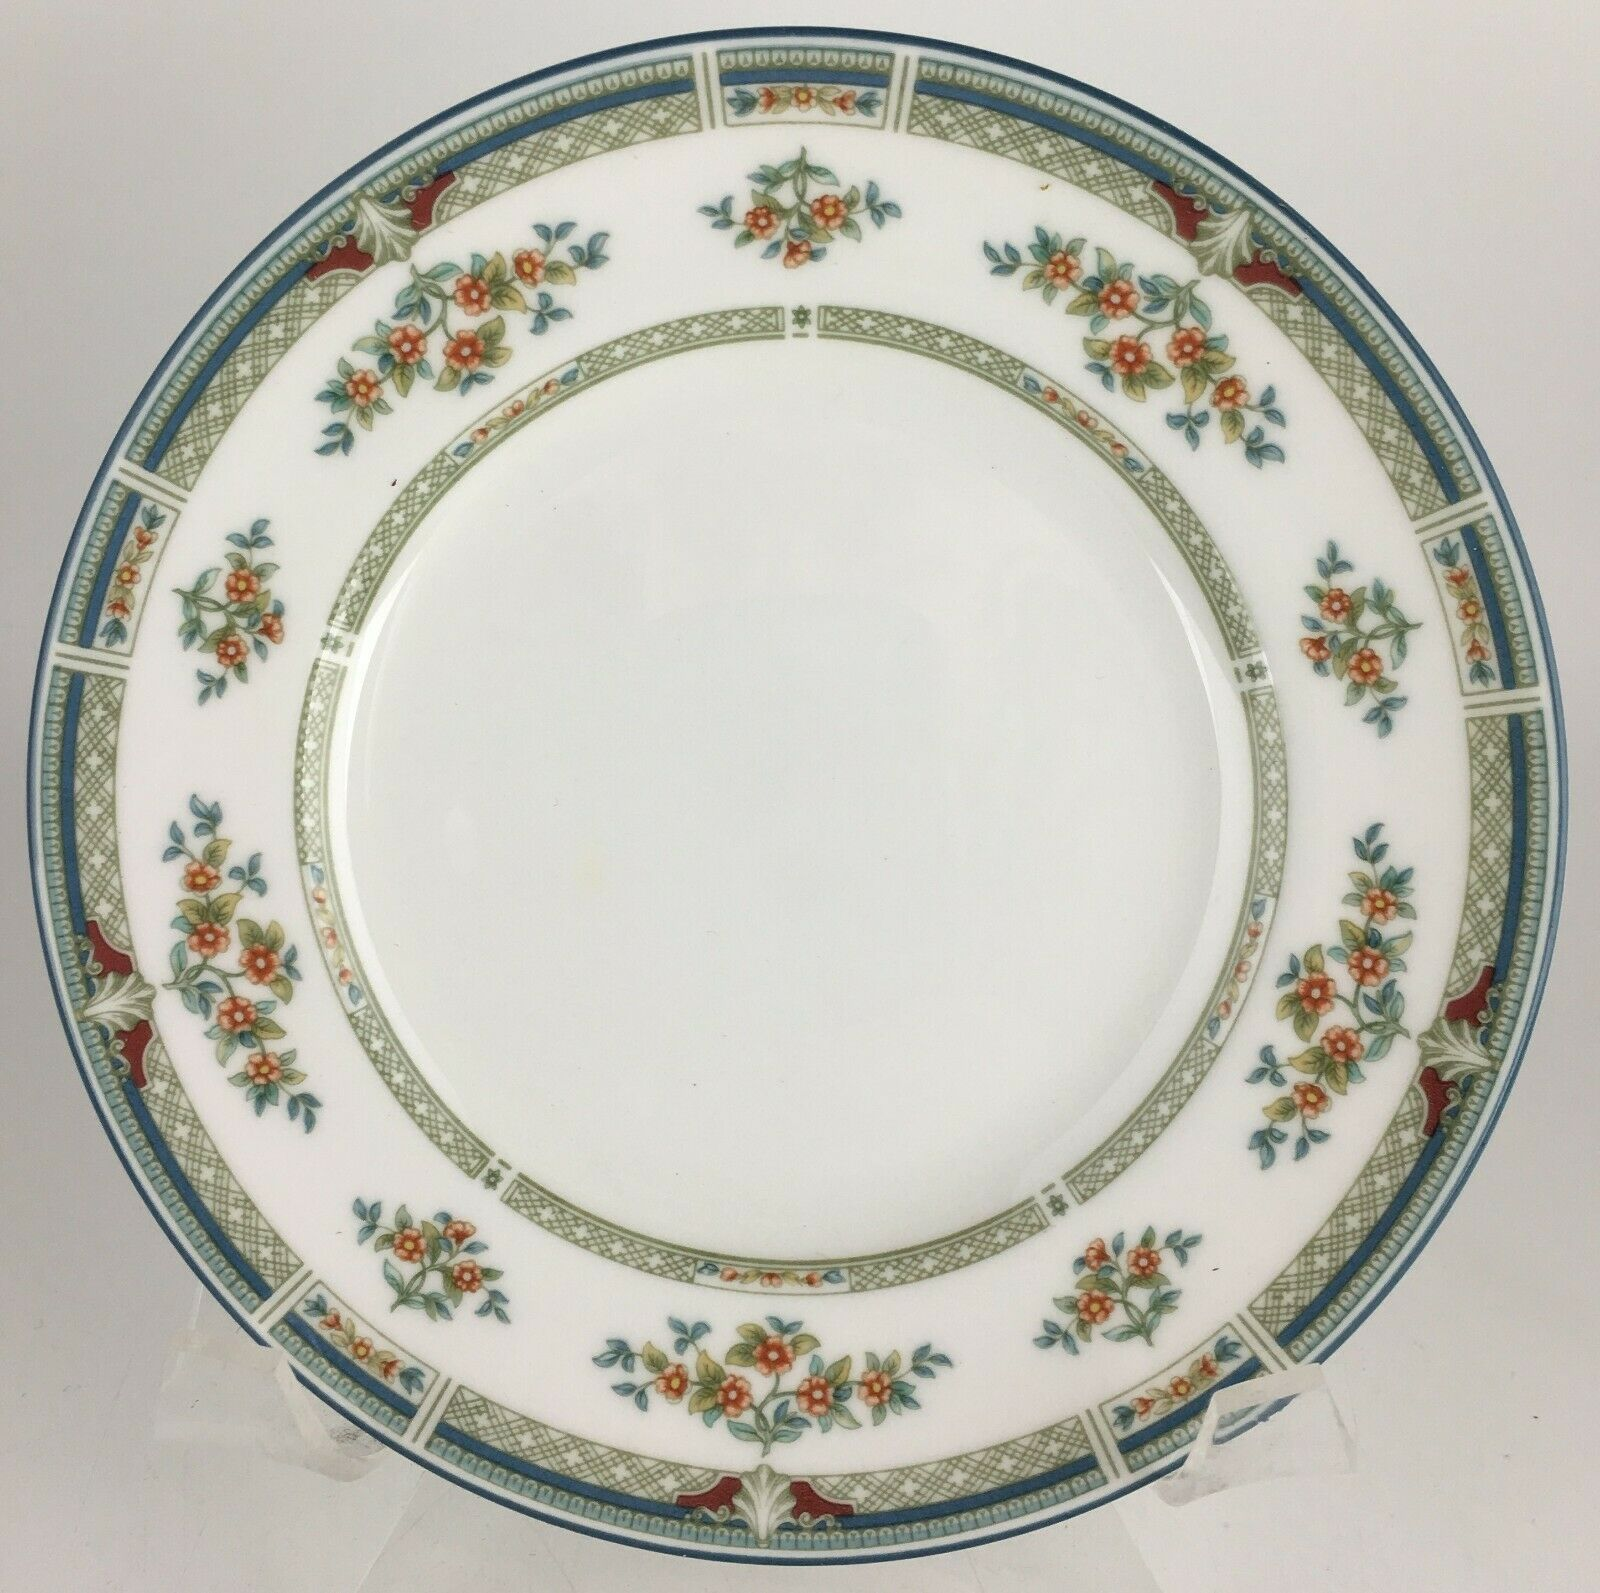 Primary image for Wedgwood Hampshire R4668 Bread & butter plate